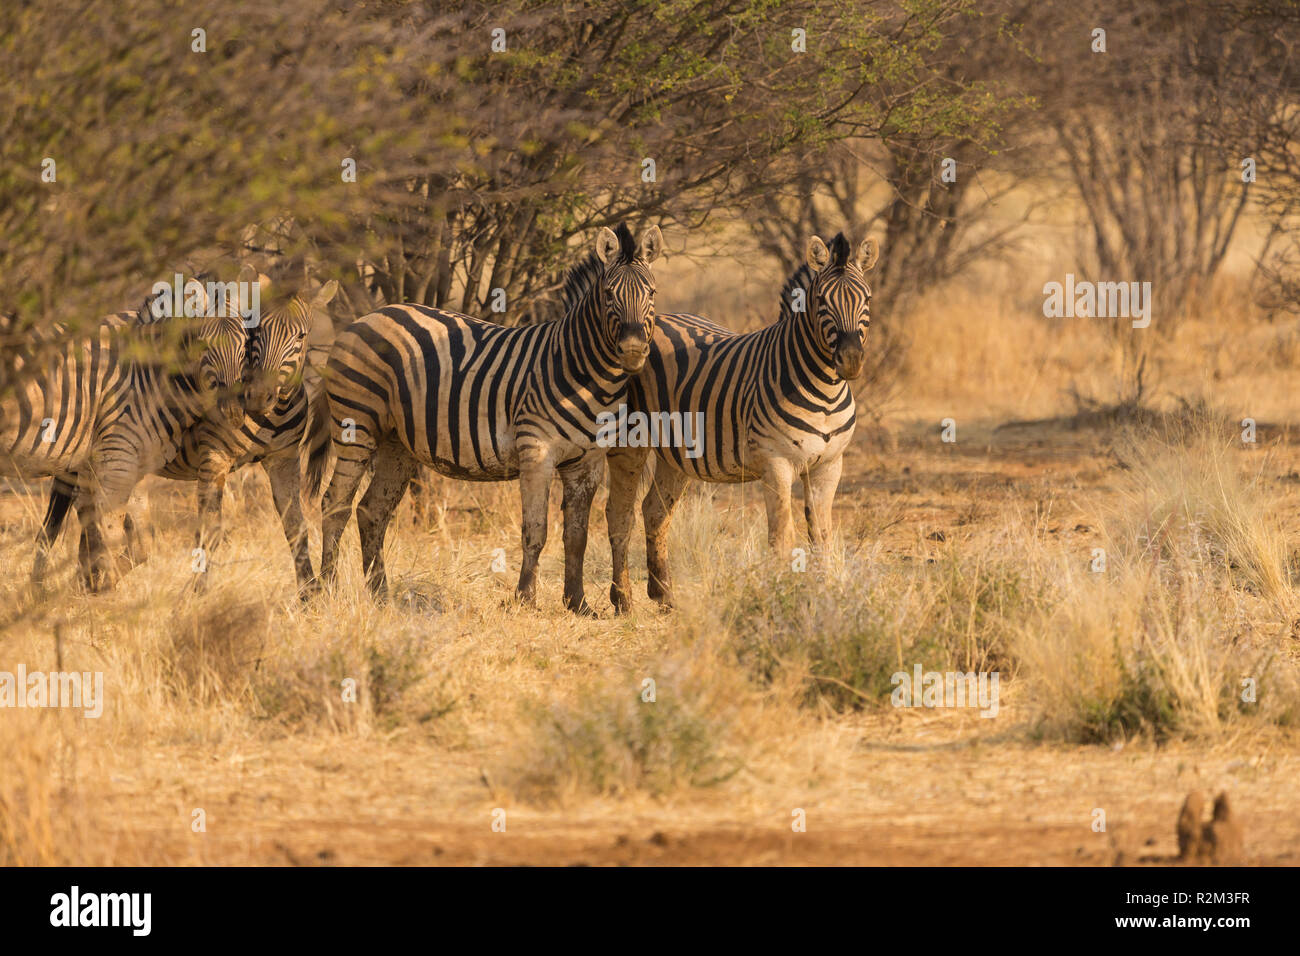 Zebra or zebras group in the wild at sunset in Erindi private game reserve in Namibia, Africa Stock Photo